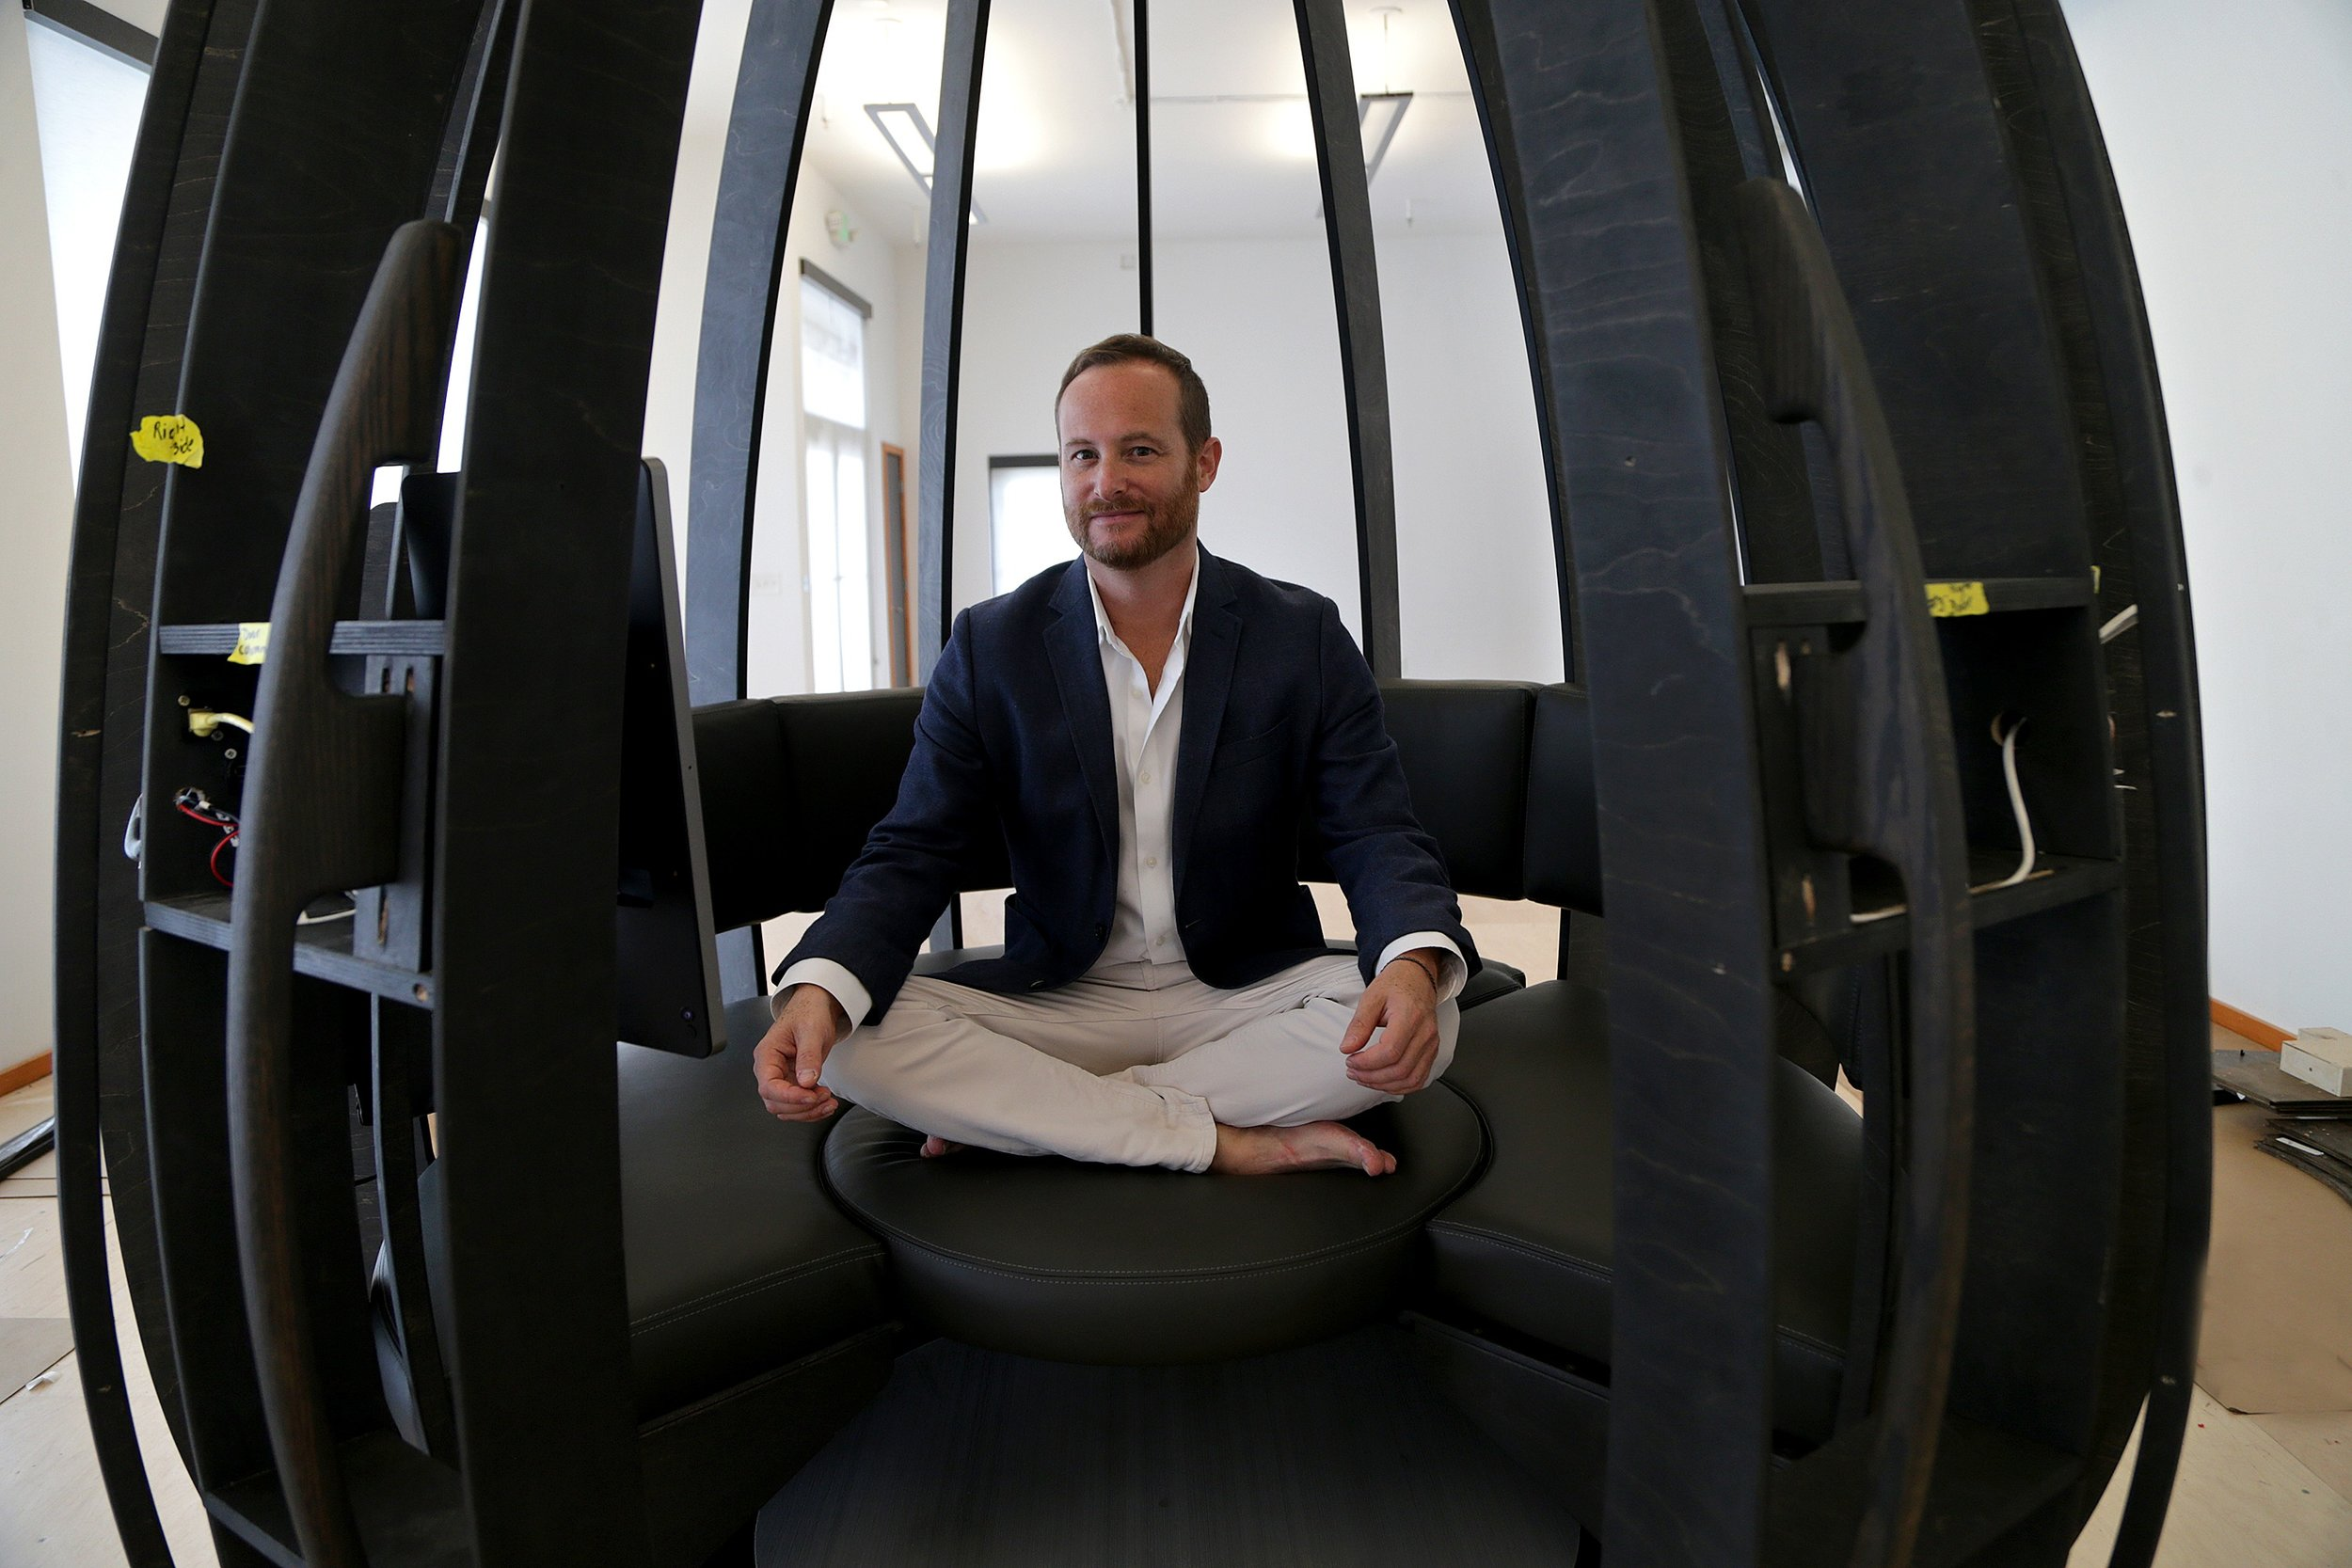 Jonathan Marcoschamer inside a prototype of OpenSeed's meditation pod at CIC Miami.